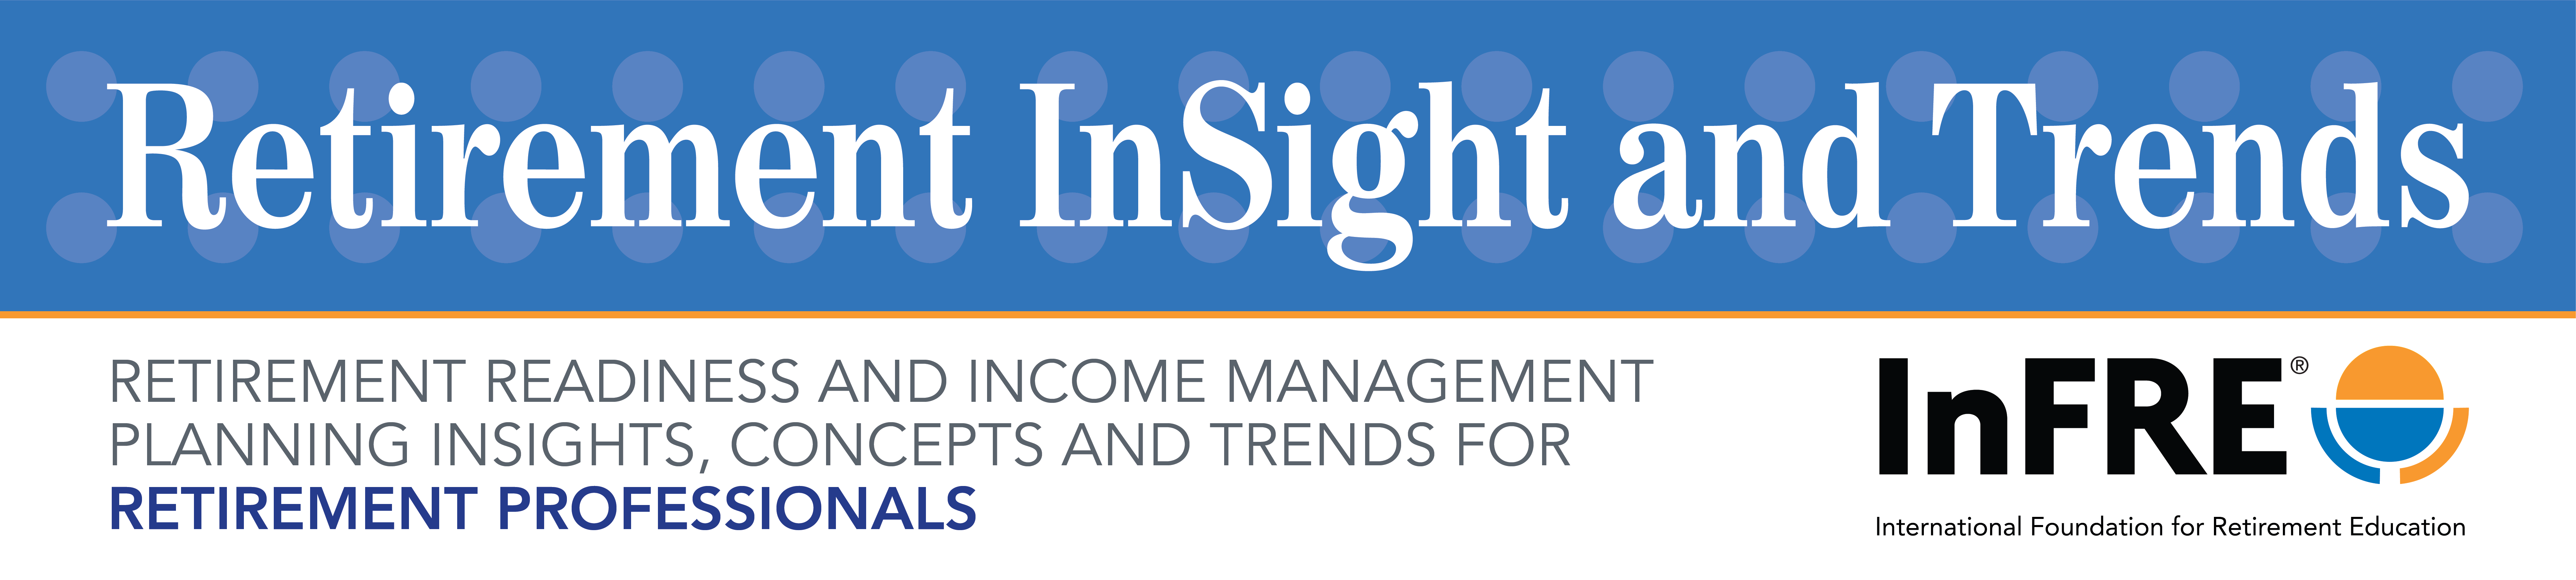 Retirement InSight and Trends